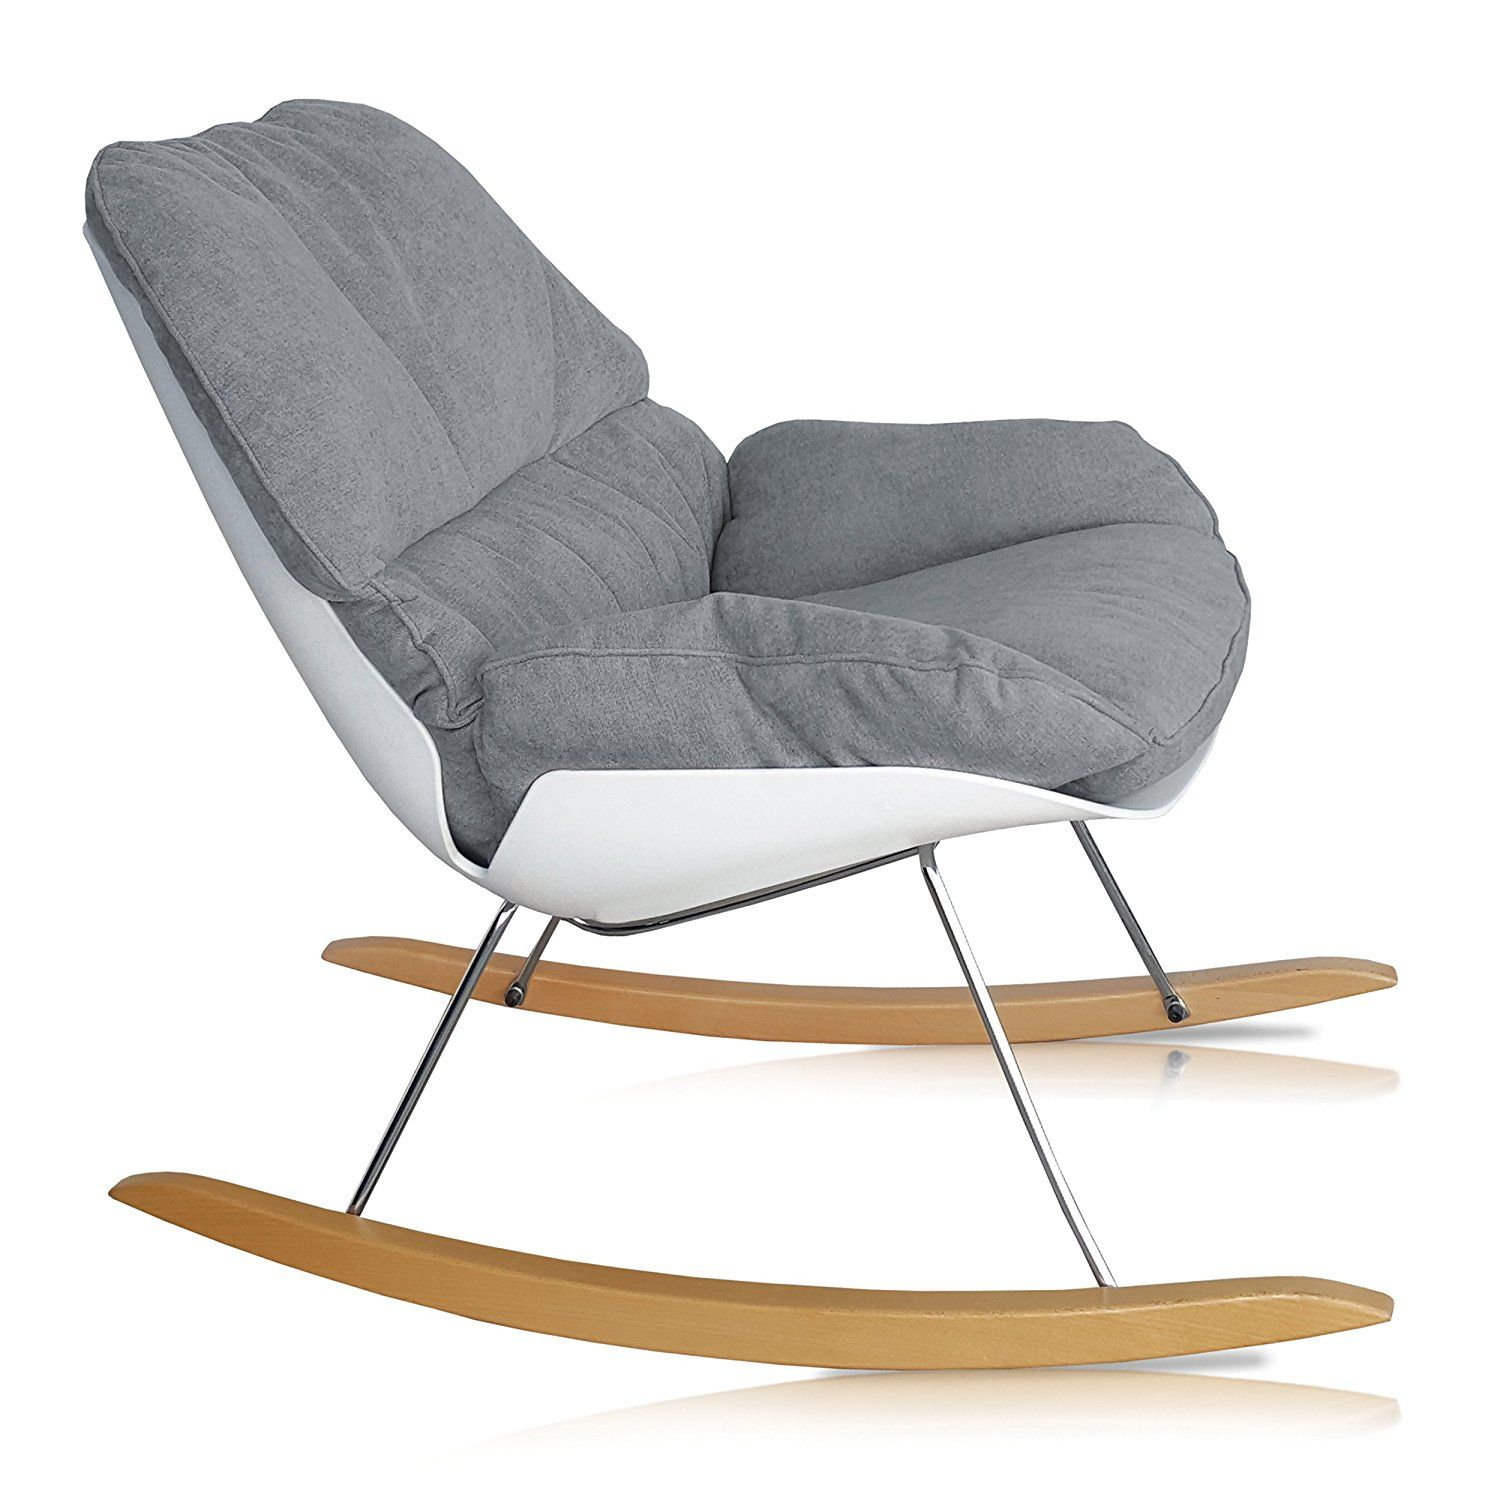 This Nursery Rocking Chair By P Kolino Would Look So Nice In A Modern Kid S Room